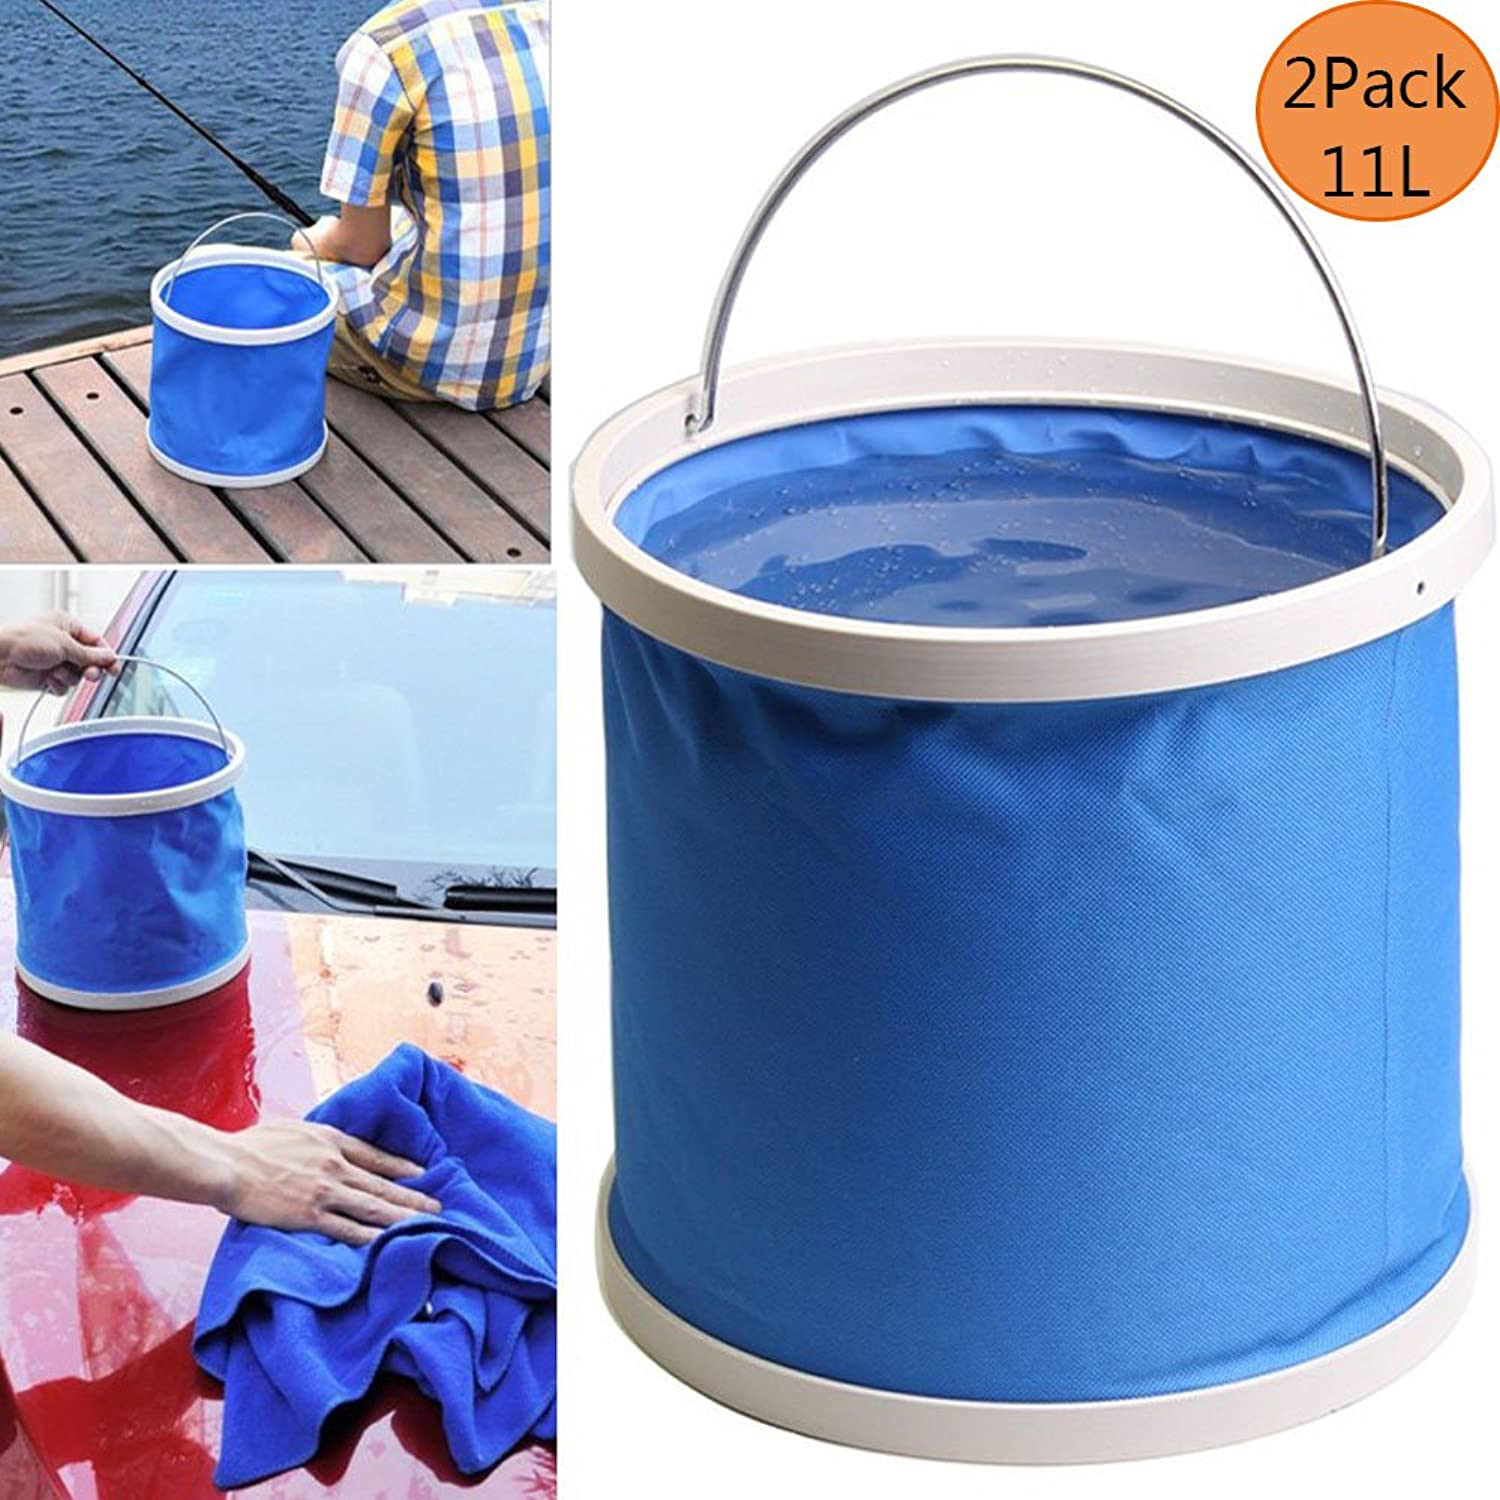 2 PCS Premium Compact Collapsible Bucket 11L Portable Folding Water Container  Lightweight & Durable  Includes Handy, For Cleaning Car Fishing Cookout Field Camping Travel, color Random